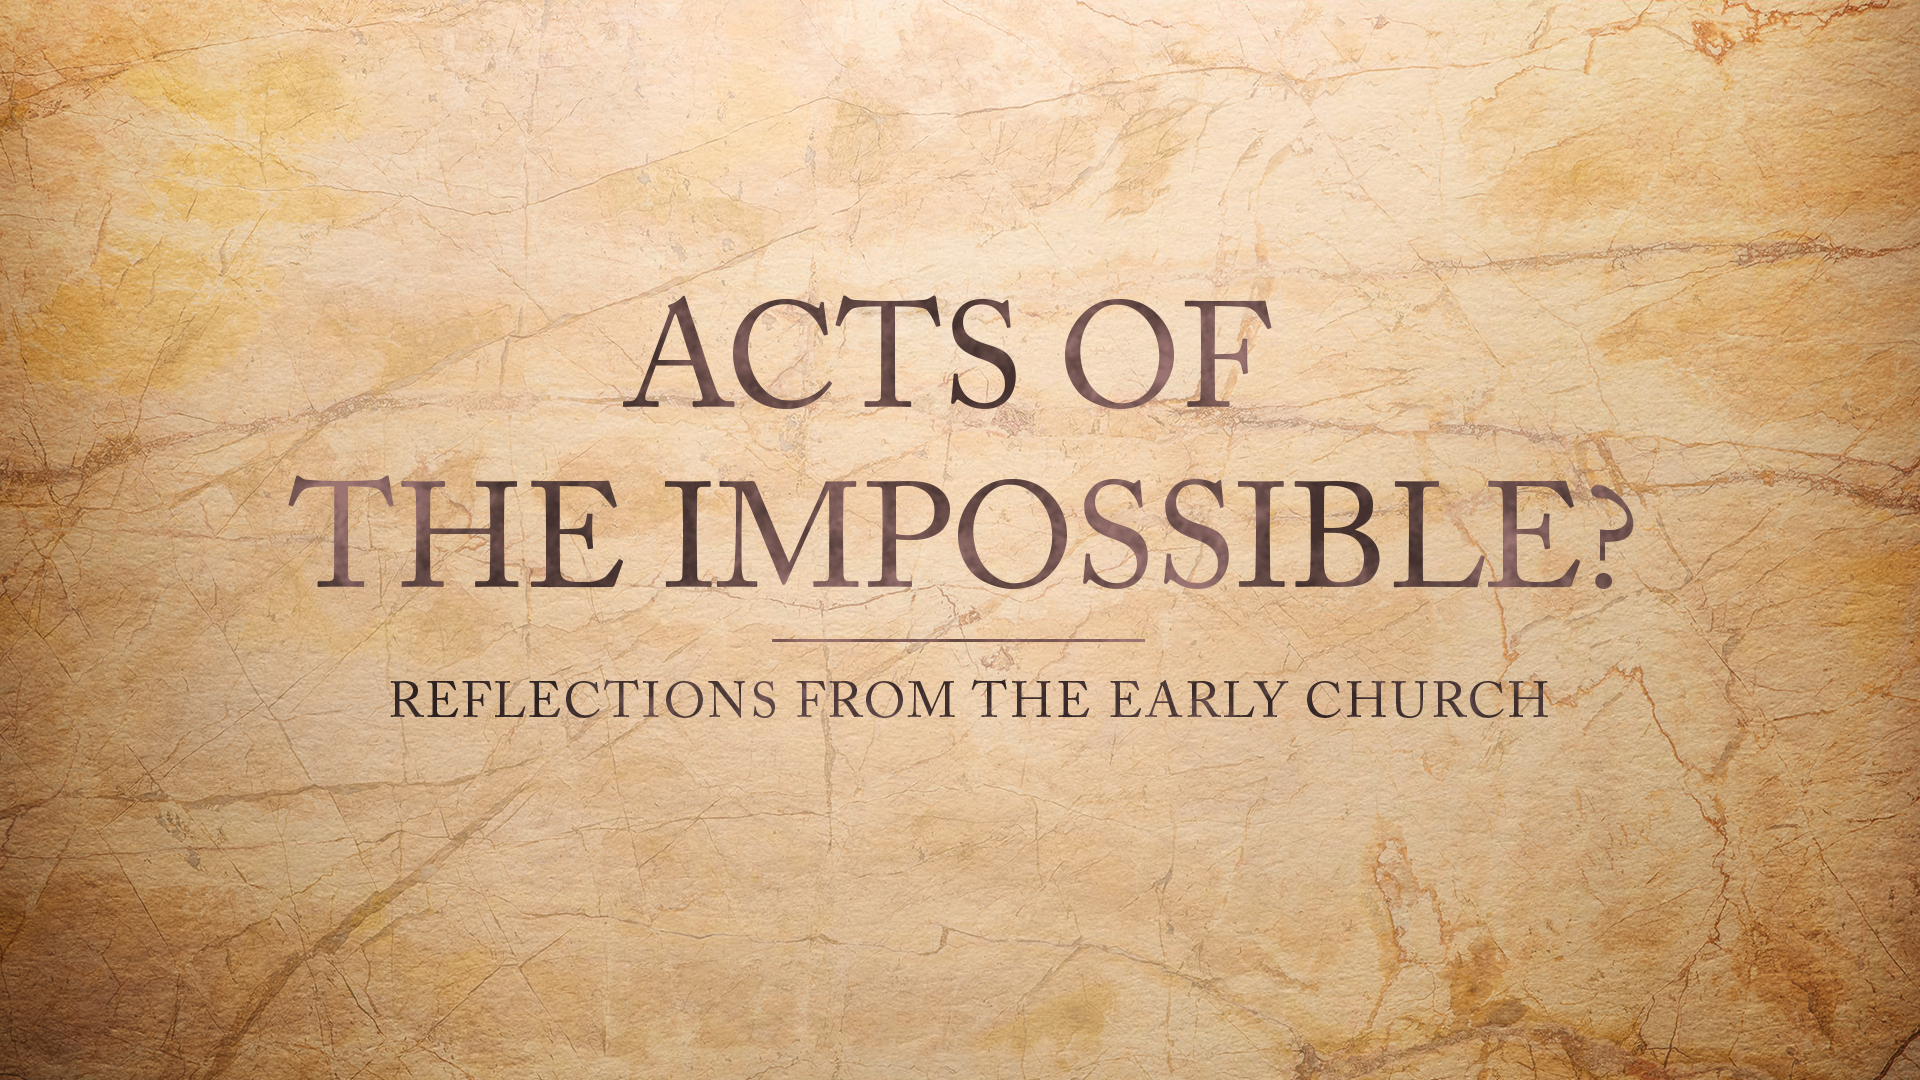 Acts of the Impossible? This same Jesus.